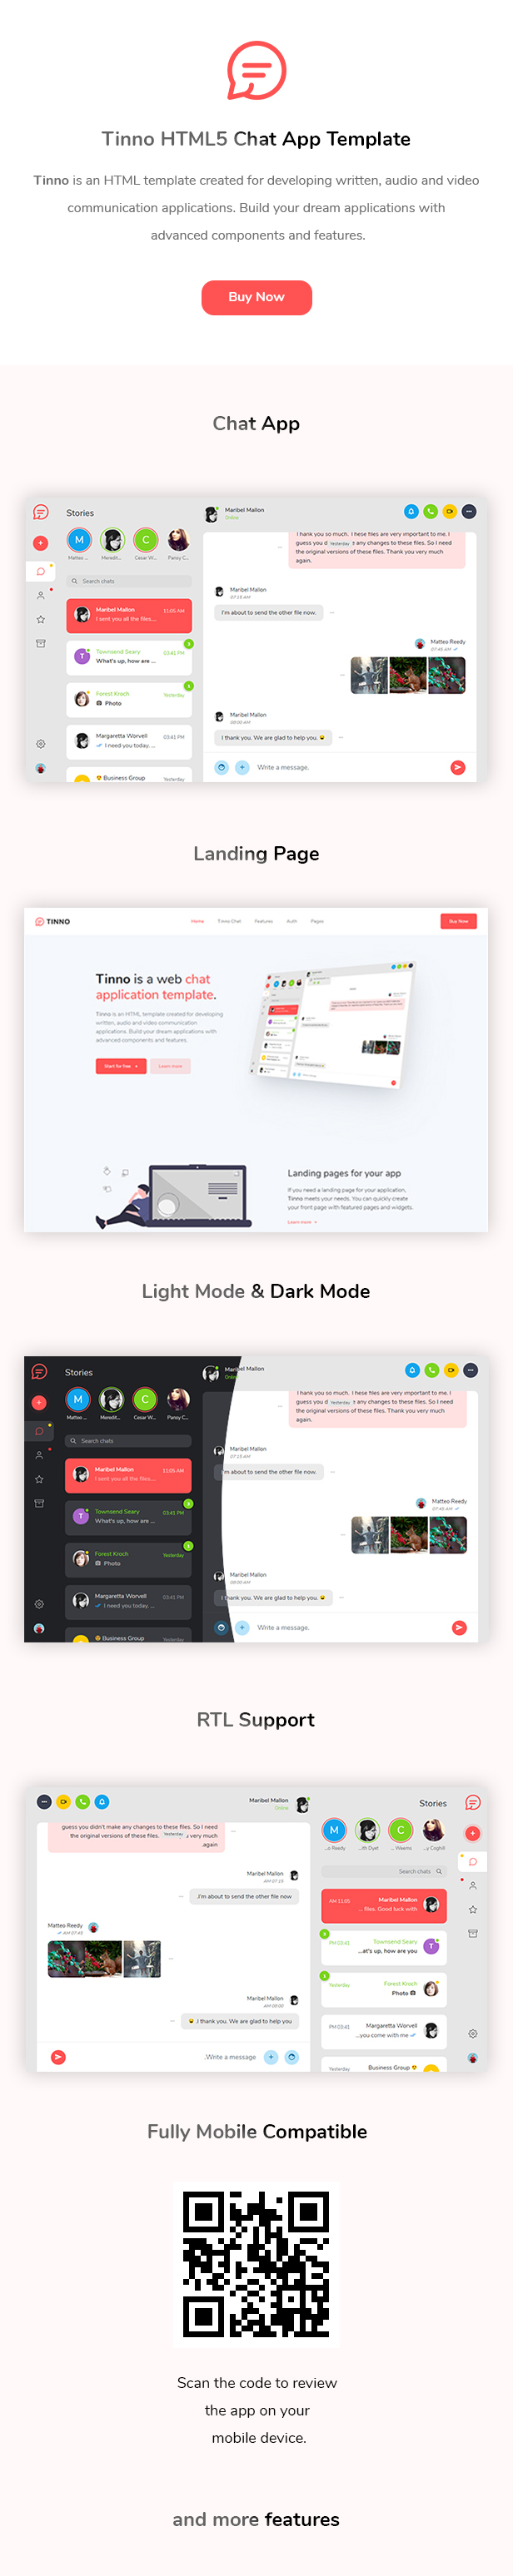 Tinno - HTML5 Chat App Template - 1